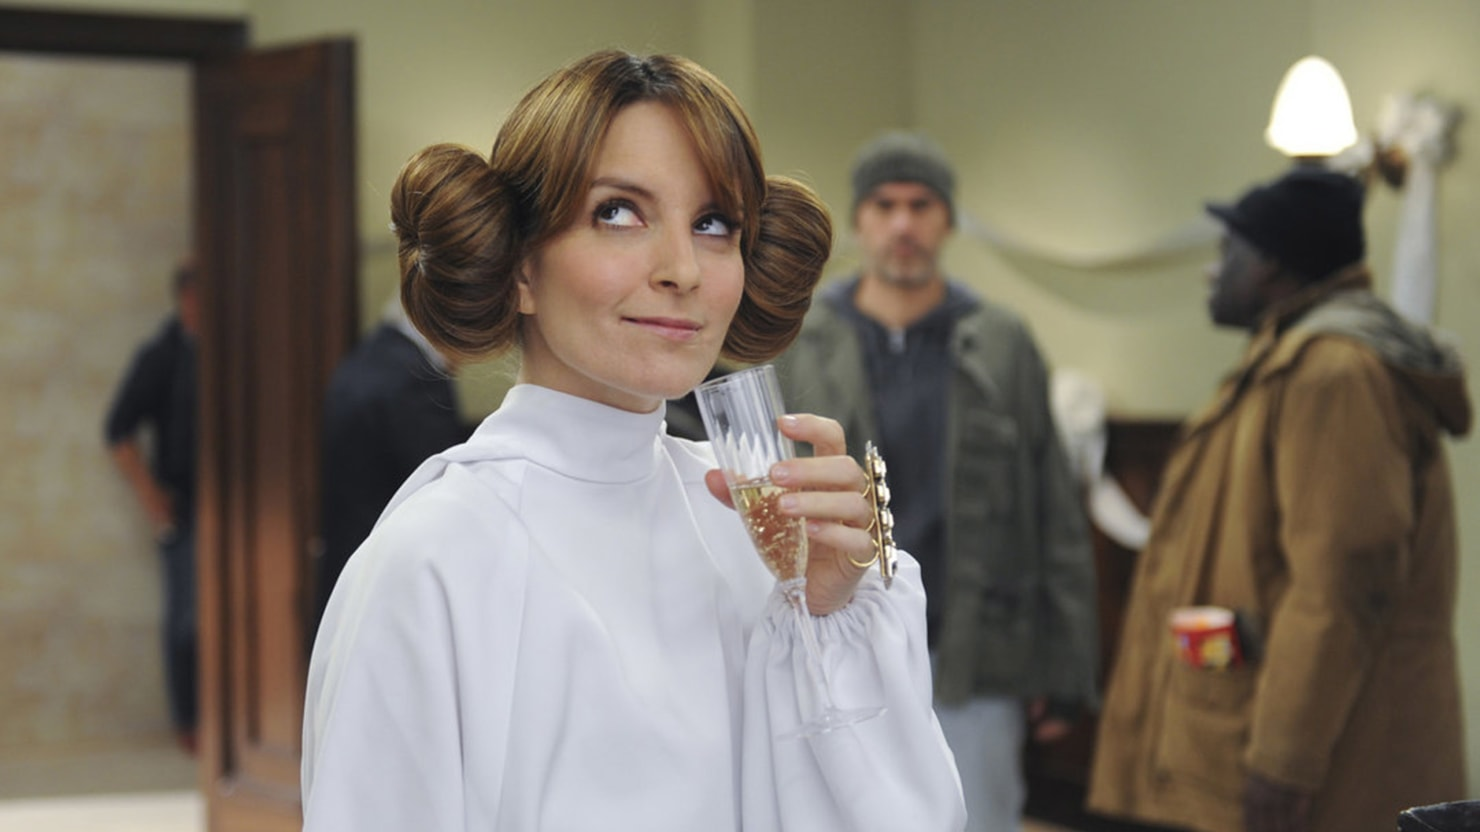 Tina Fey Remembers Carrie Fishers Legendary 30 Rock